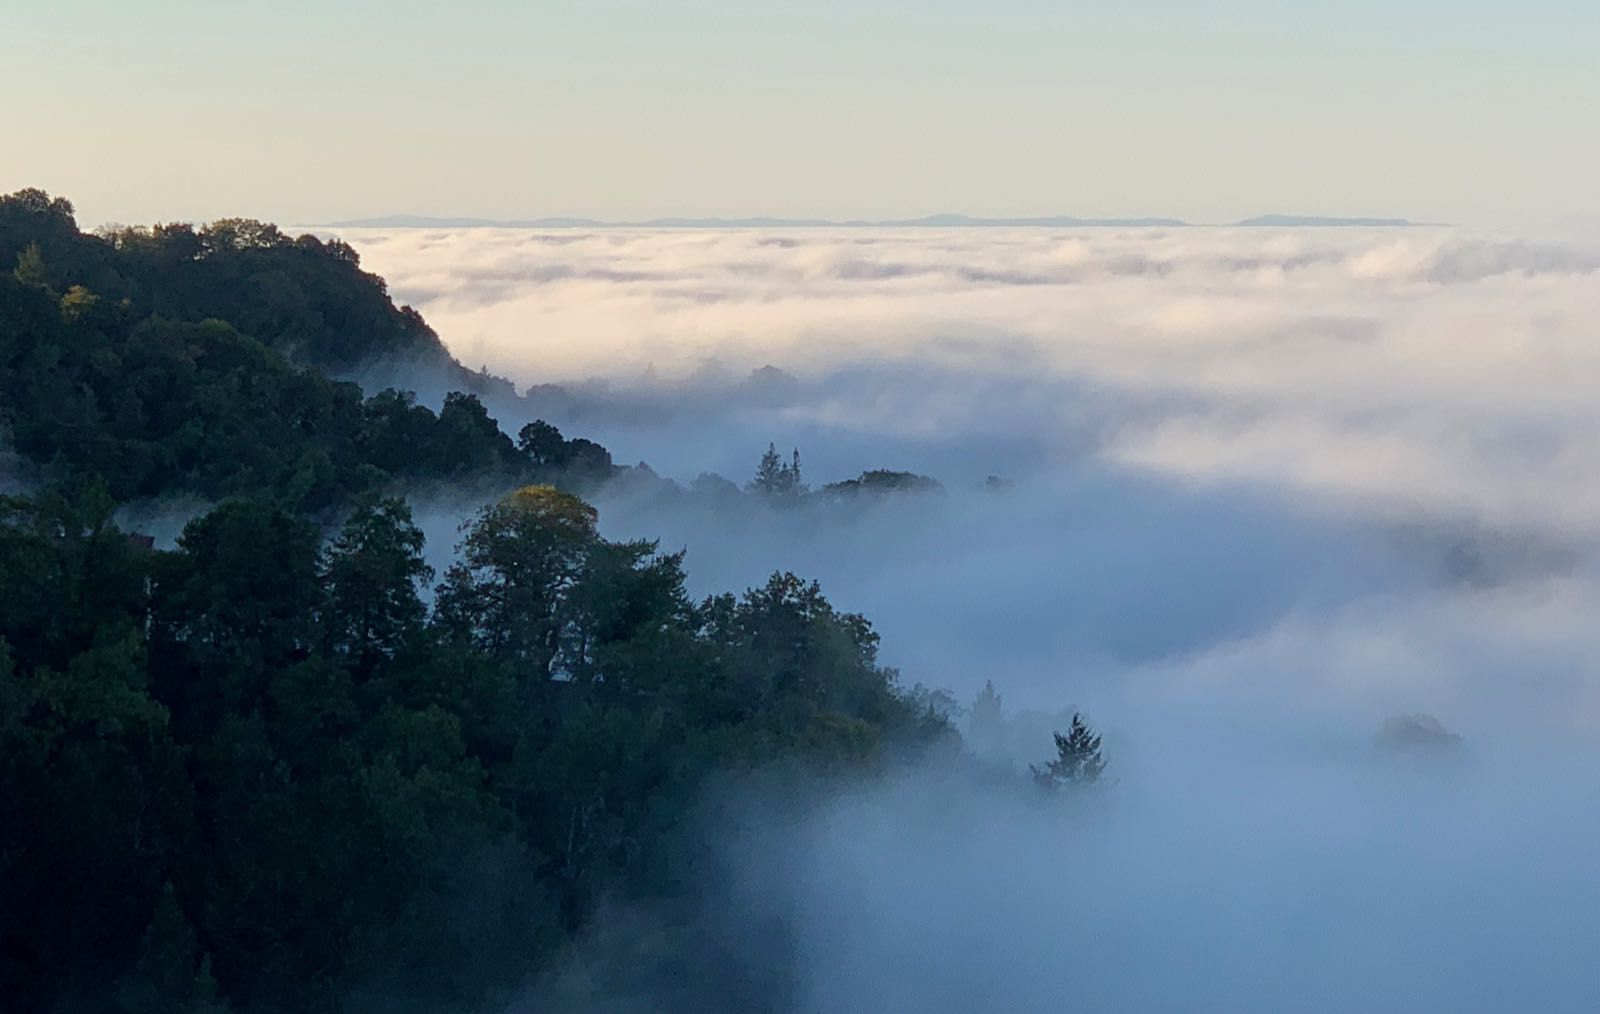 Mist creeps over the landscape in the Santa Cruz Mountains.